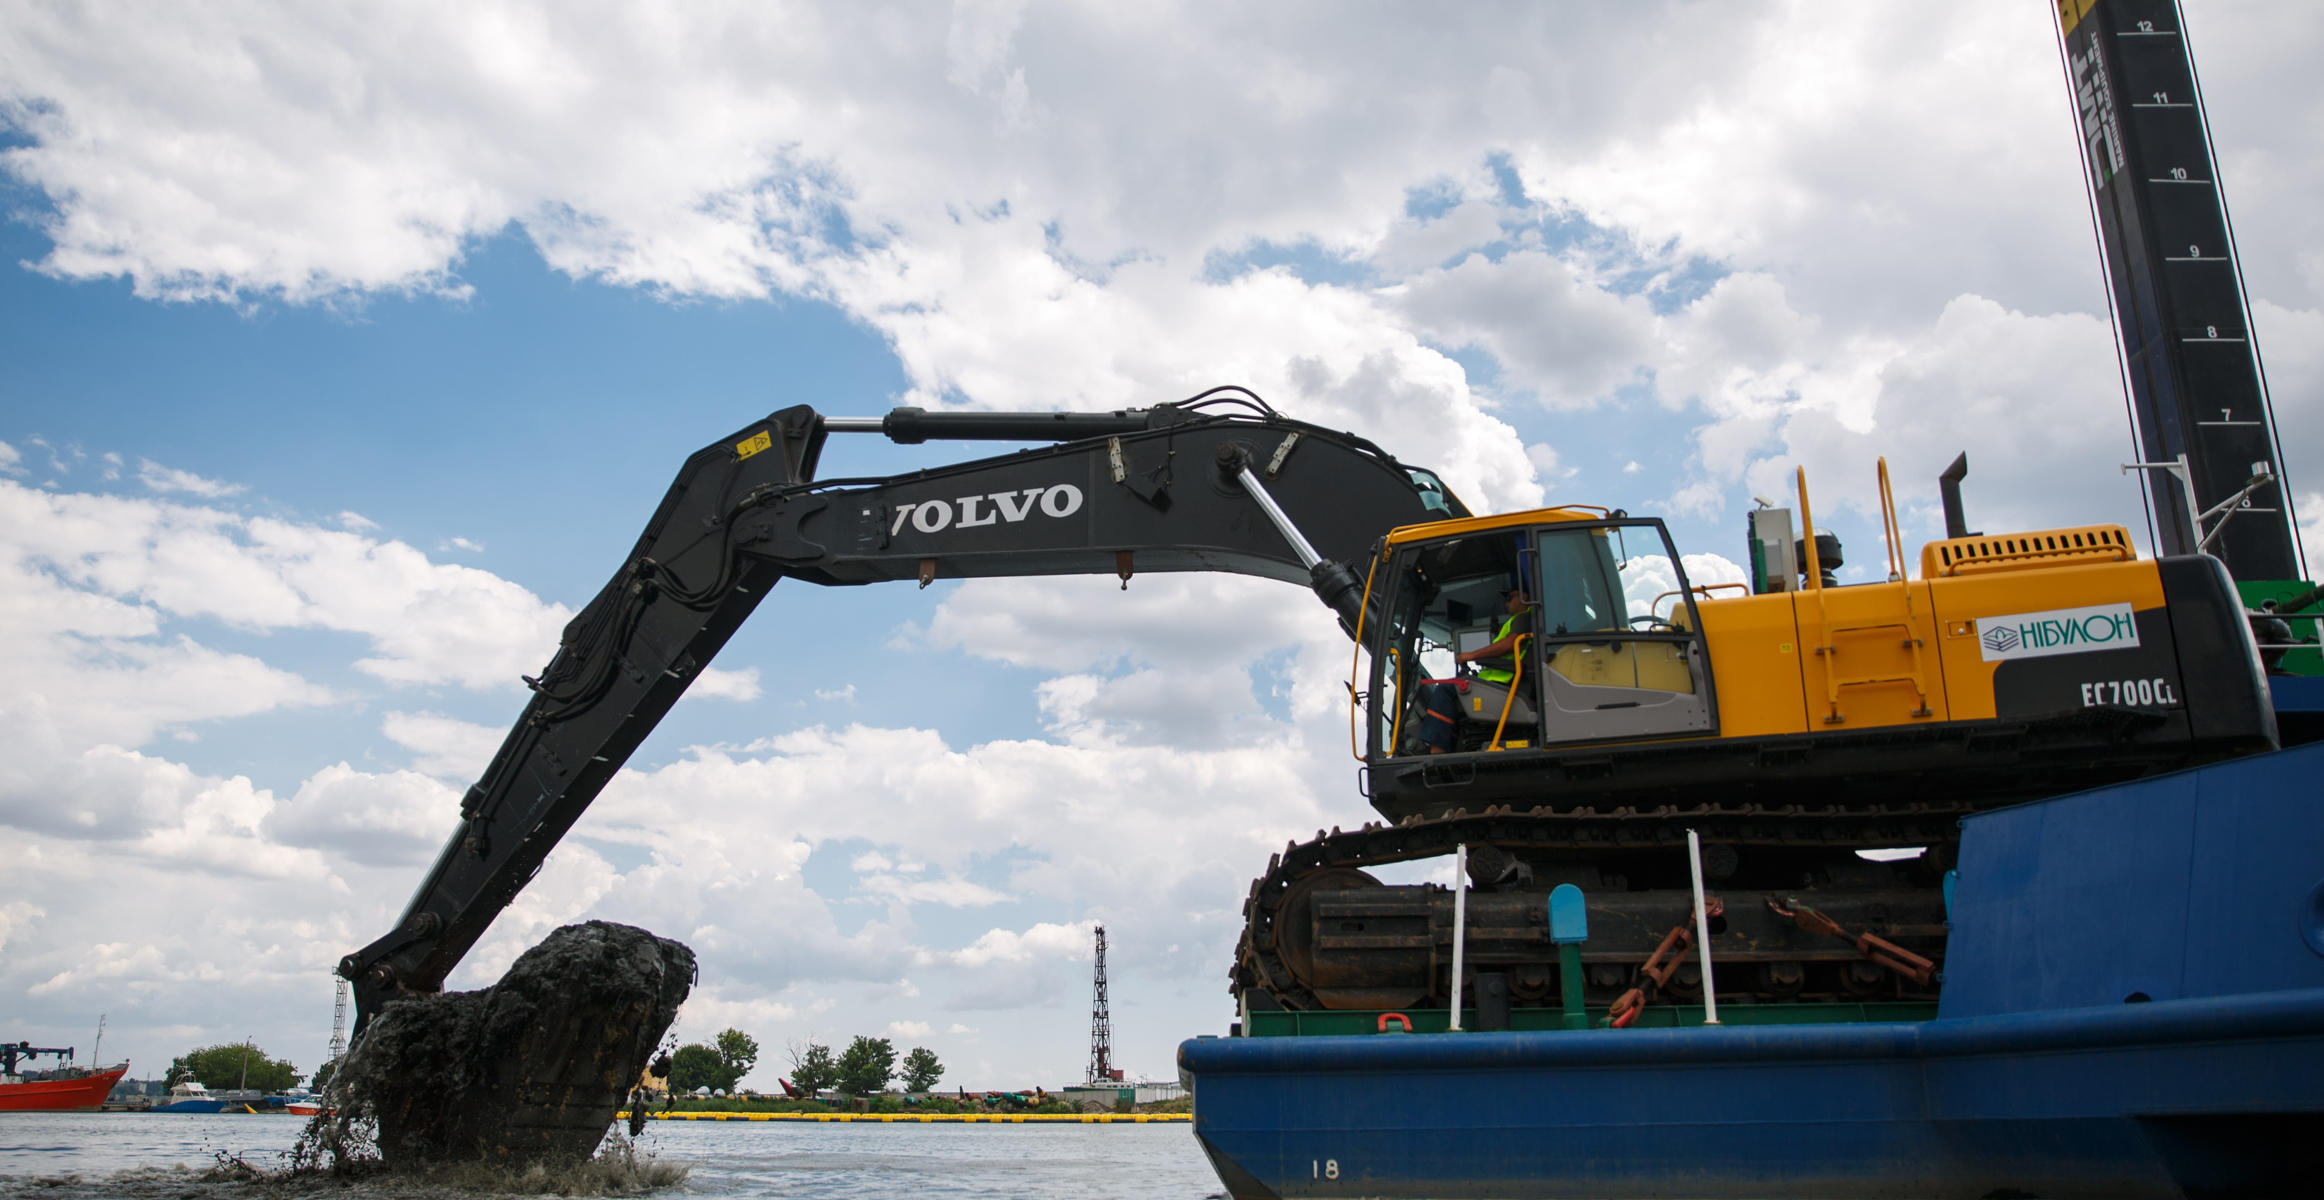 Volvo dredging excavator in action